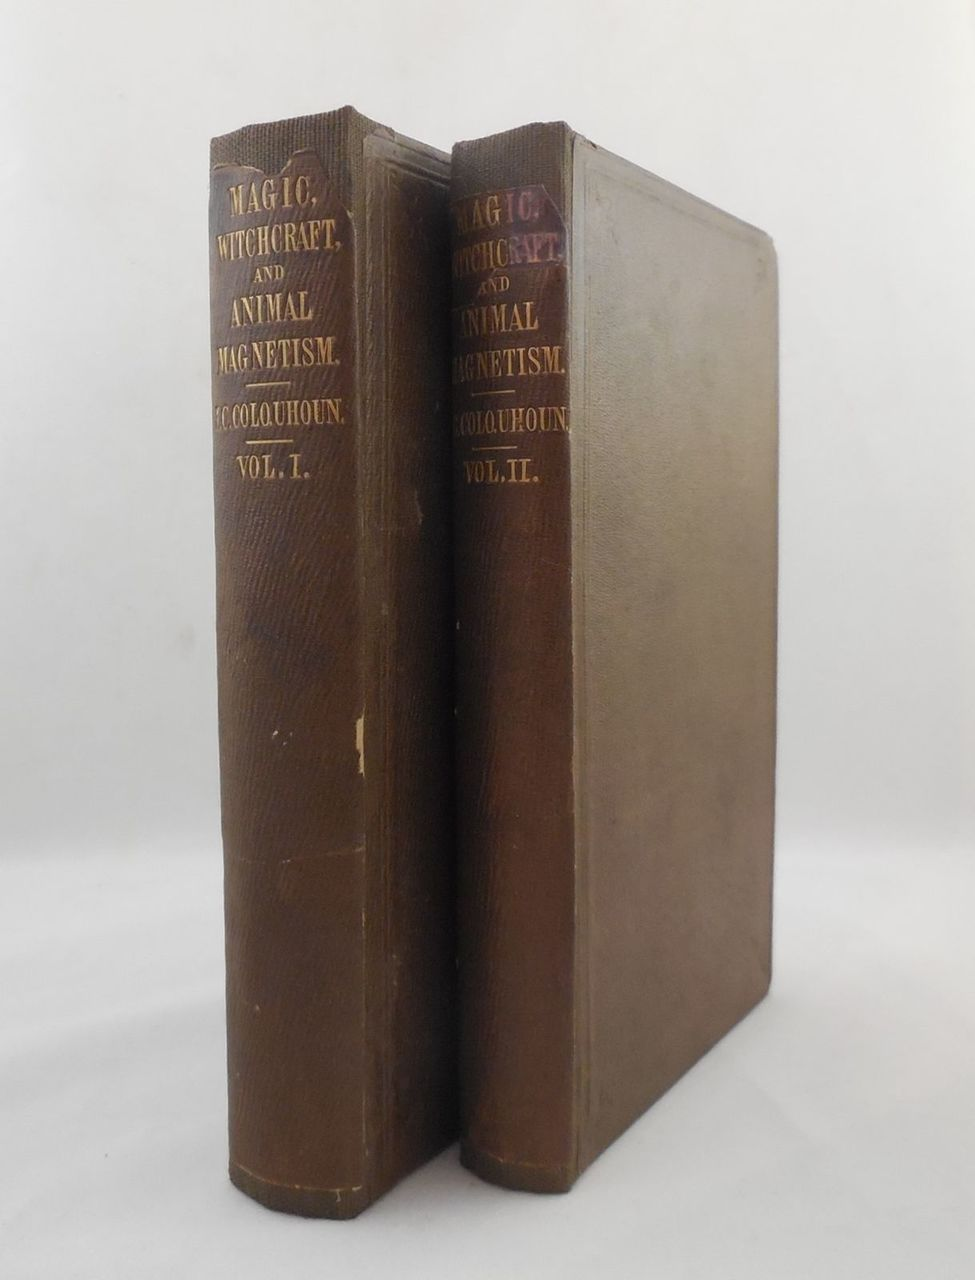 MAGIC, WITCHCRAFT, AND ANIMAL MAGNETISM, by J.C. Colquhoun - 1851 [2 Vol]